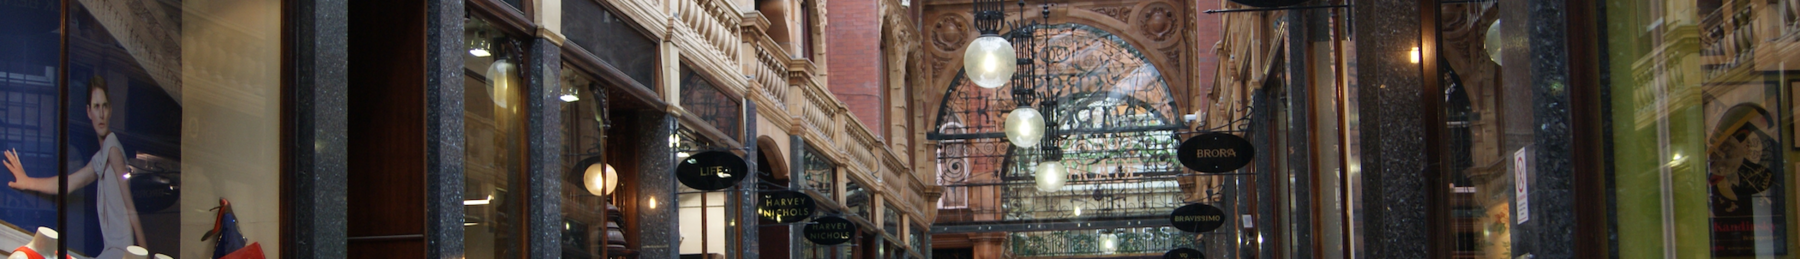 "Pay a visit to the County Arcade, and it's easy to see why Leeds has been dubbed ""the Knightsbridge of the North""."